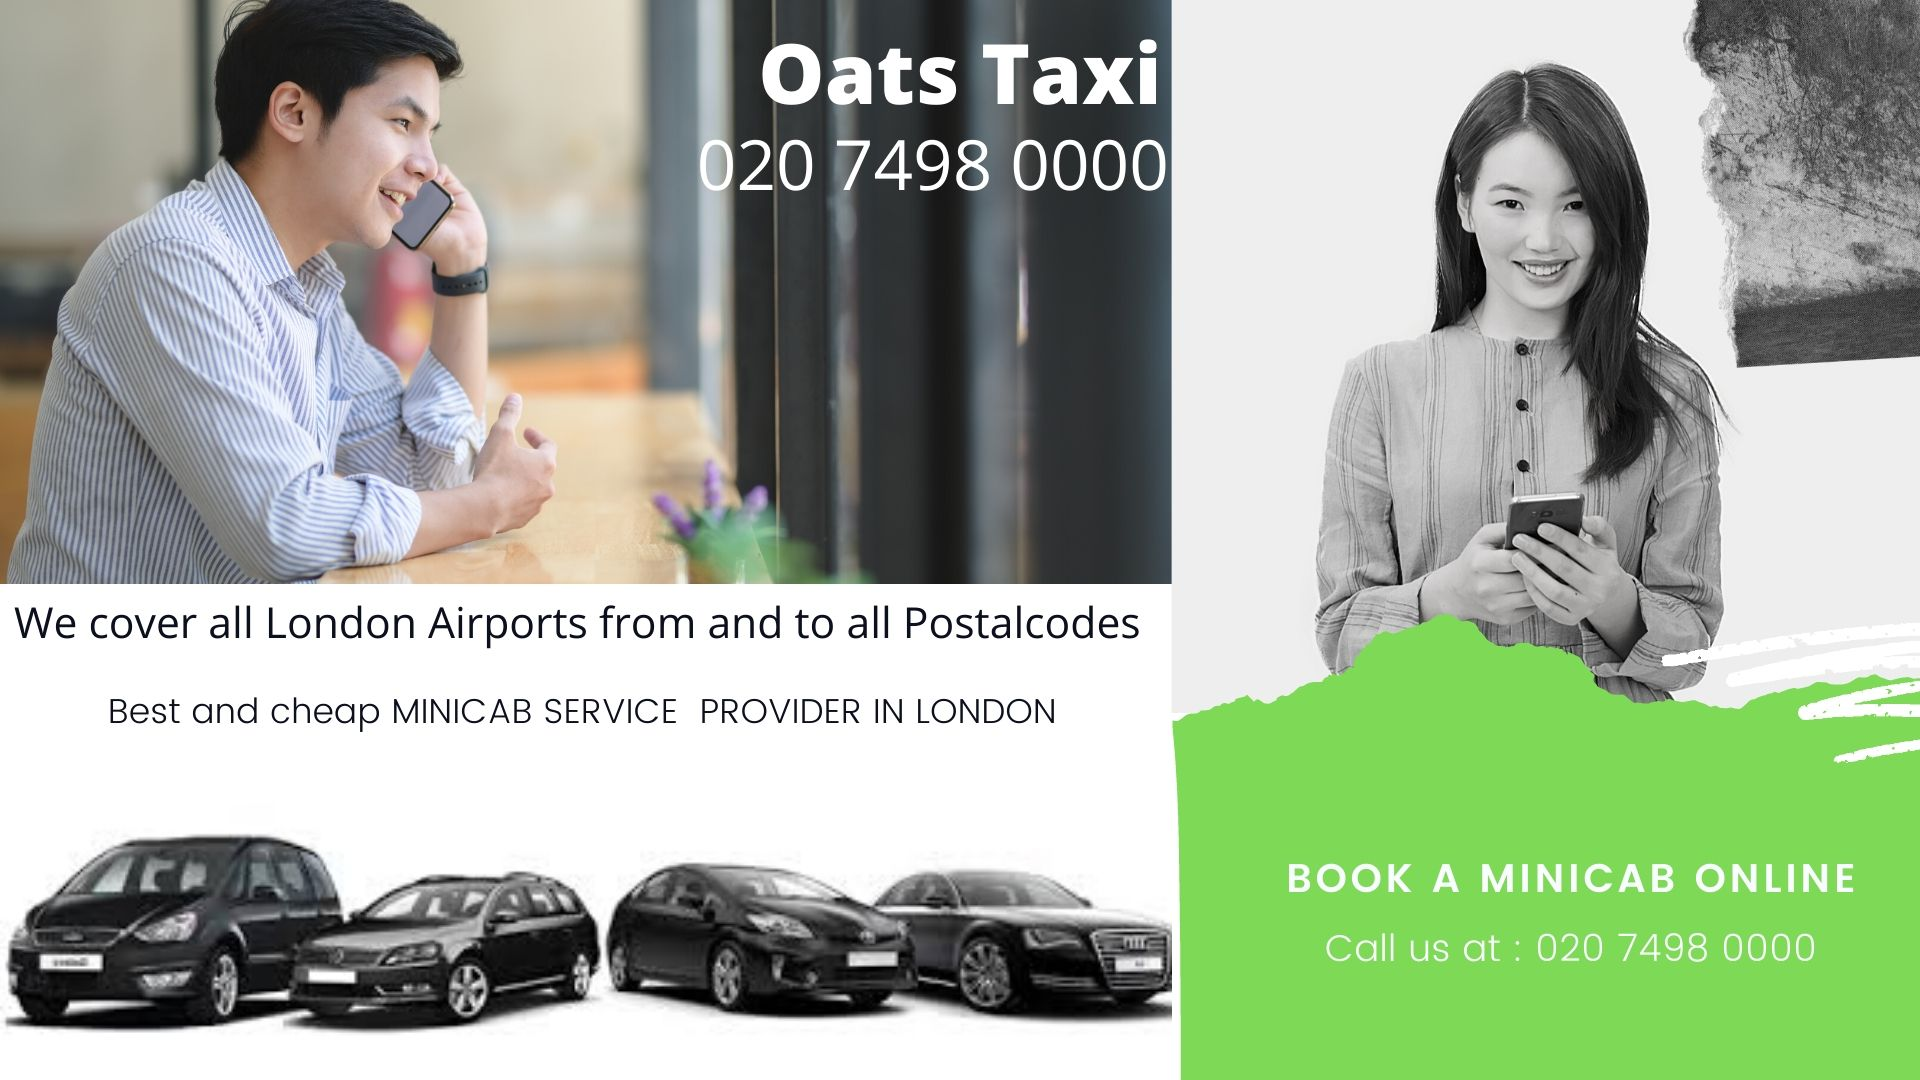 Nearest Minicab Office in Earlsfield | Nearest Minicab Office in Gatwick Airport | Call now : 02074980000